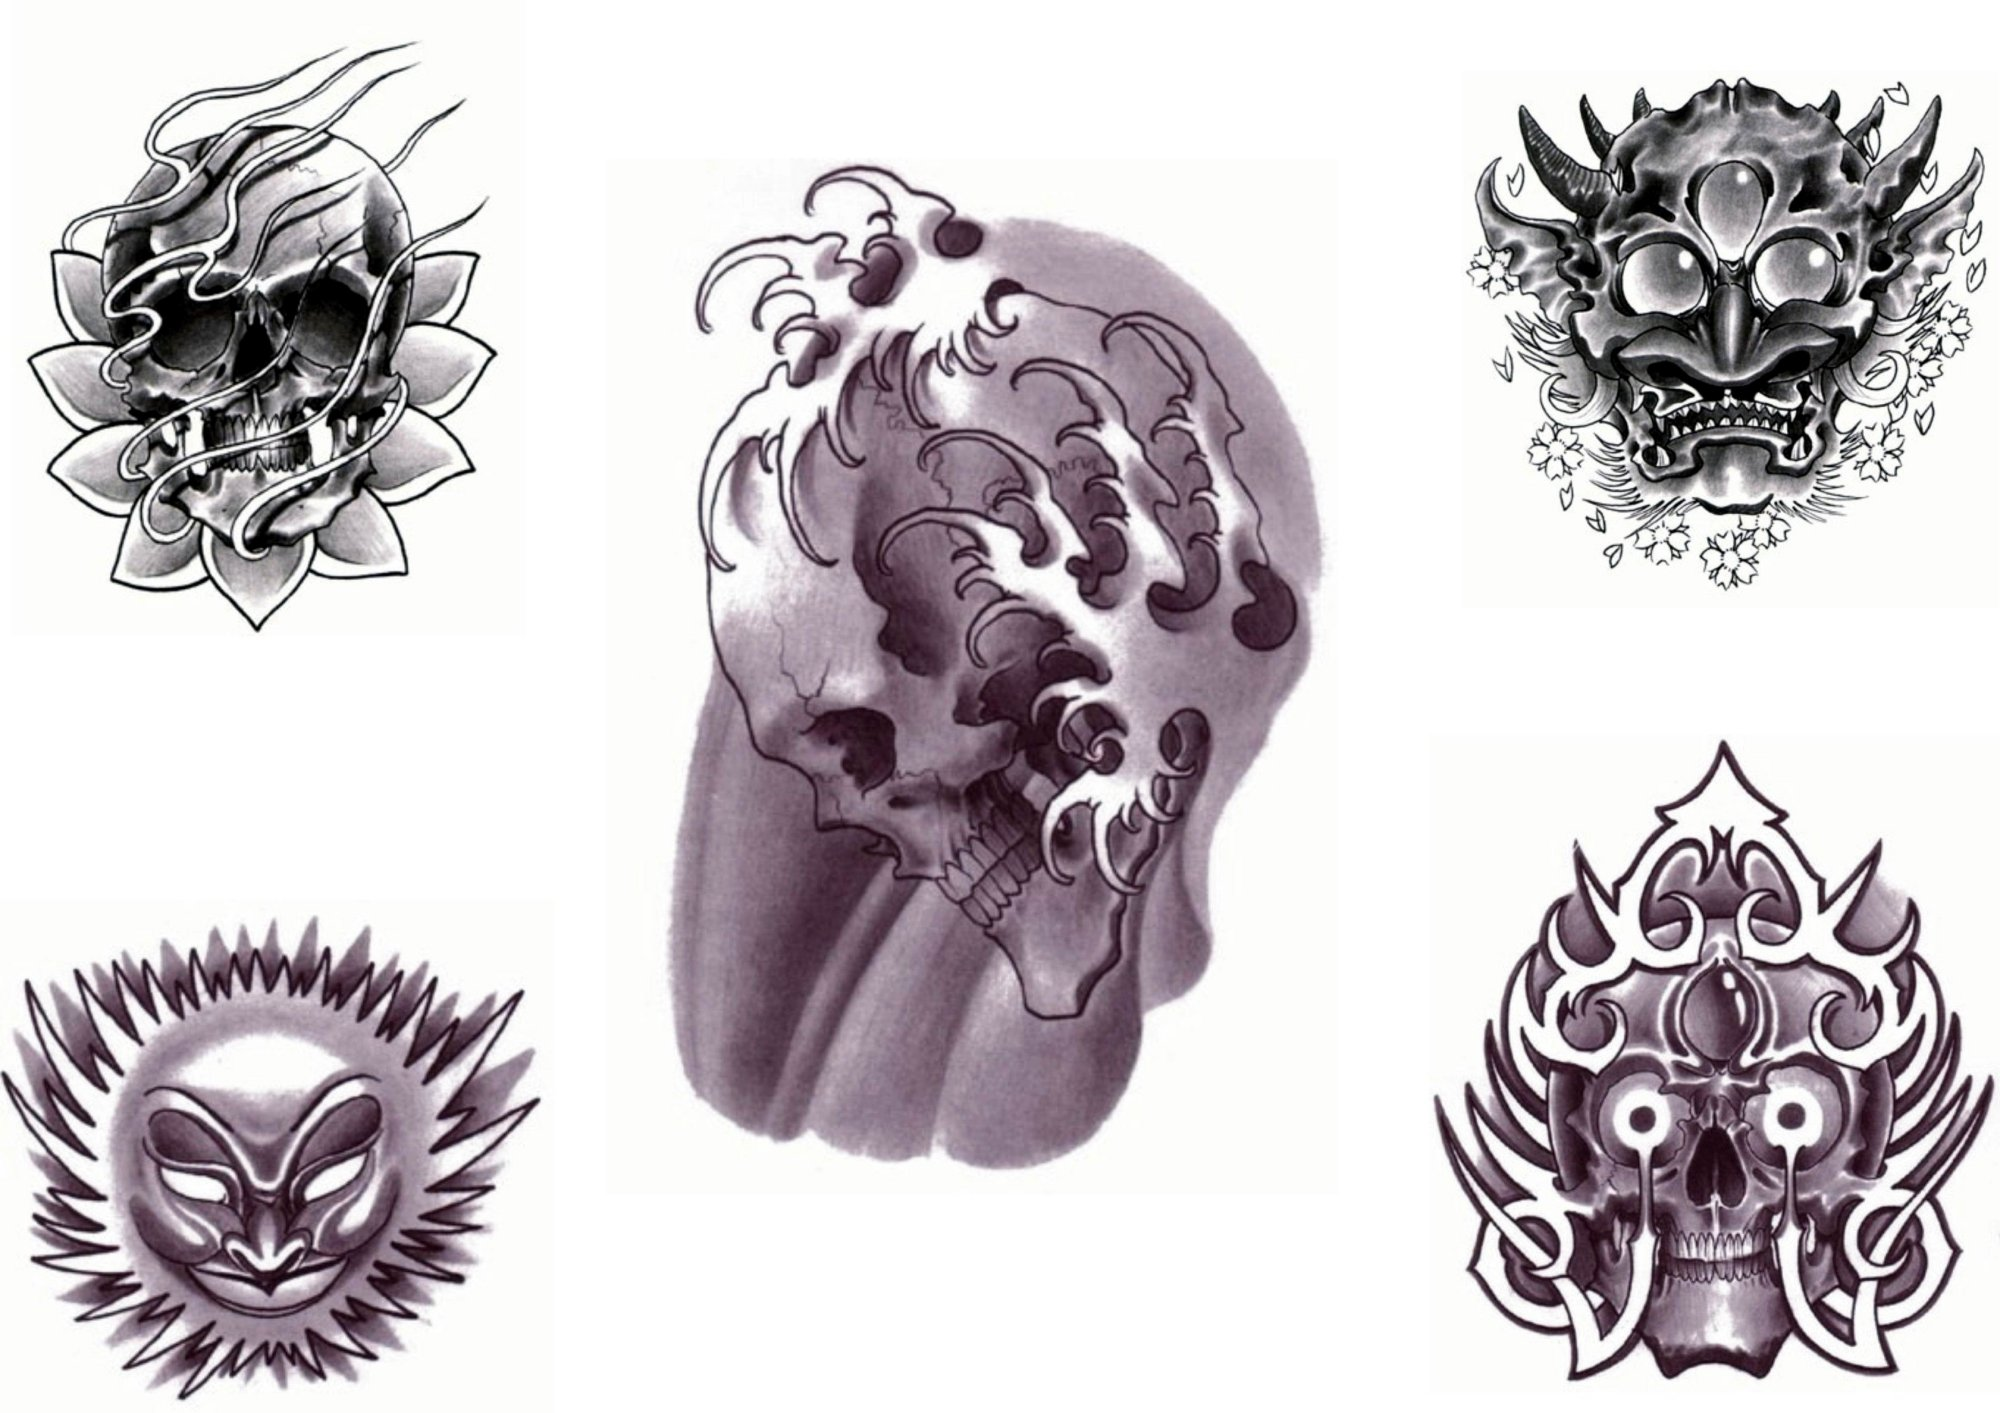 Tattoo designs by Mike Metexa.